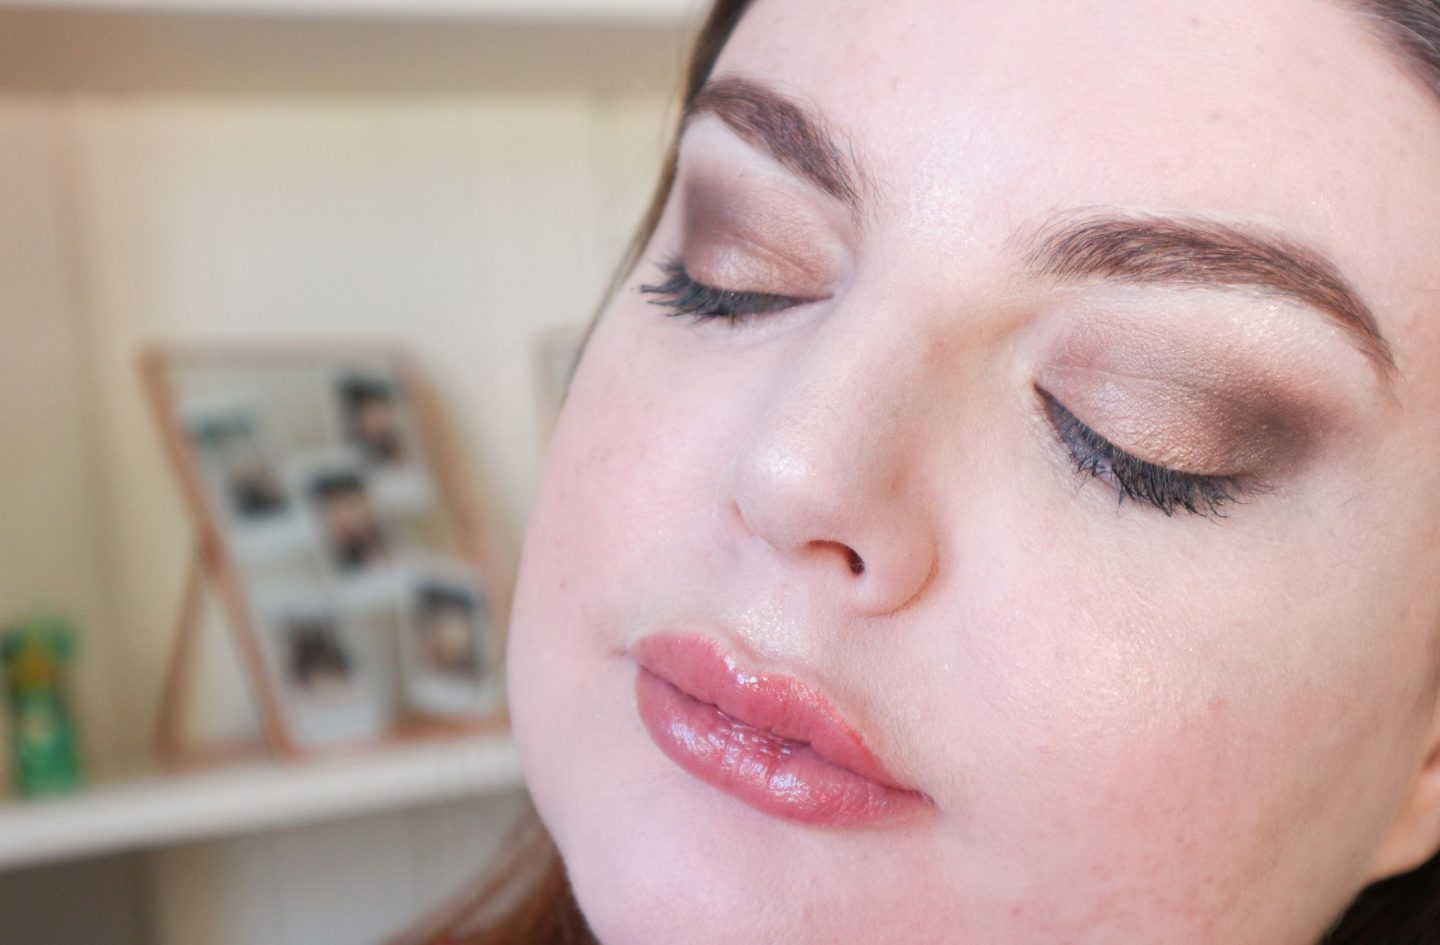 WHAT'S IT LIKE TO GET JUVEDERM LIP FILLERS? - A Life With Frills